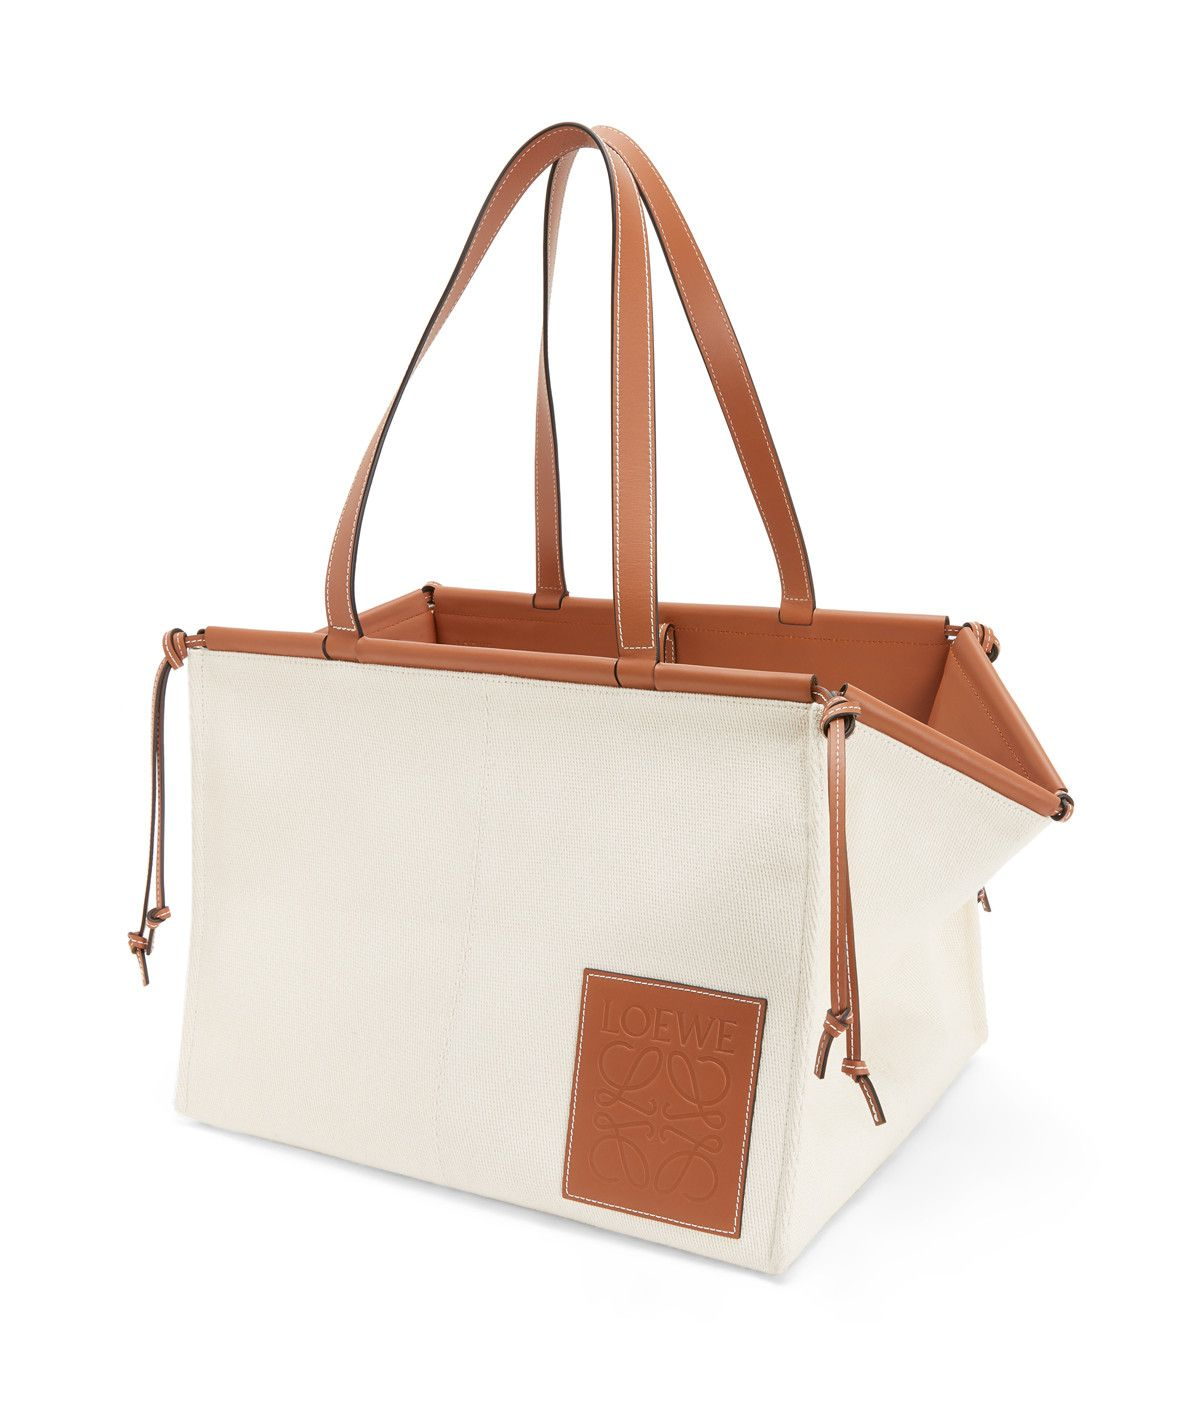 a0495a6380568 Cushion Tote Large Light Oat - LOEWE | Bags/Accessories inspiration ...